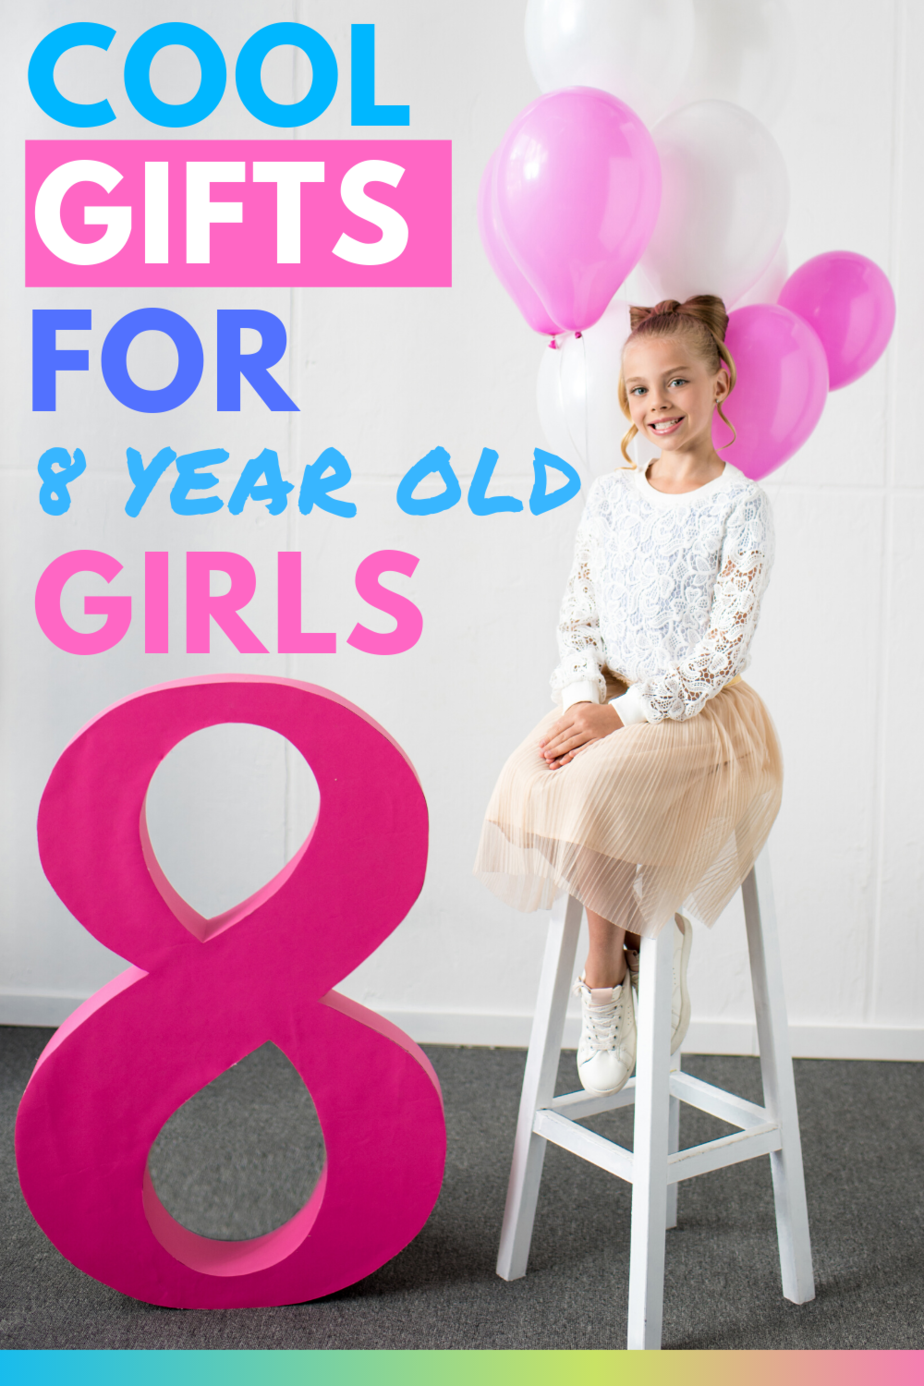 Cool Gifts For 8 Year Old Girls